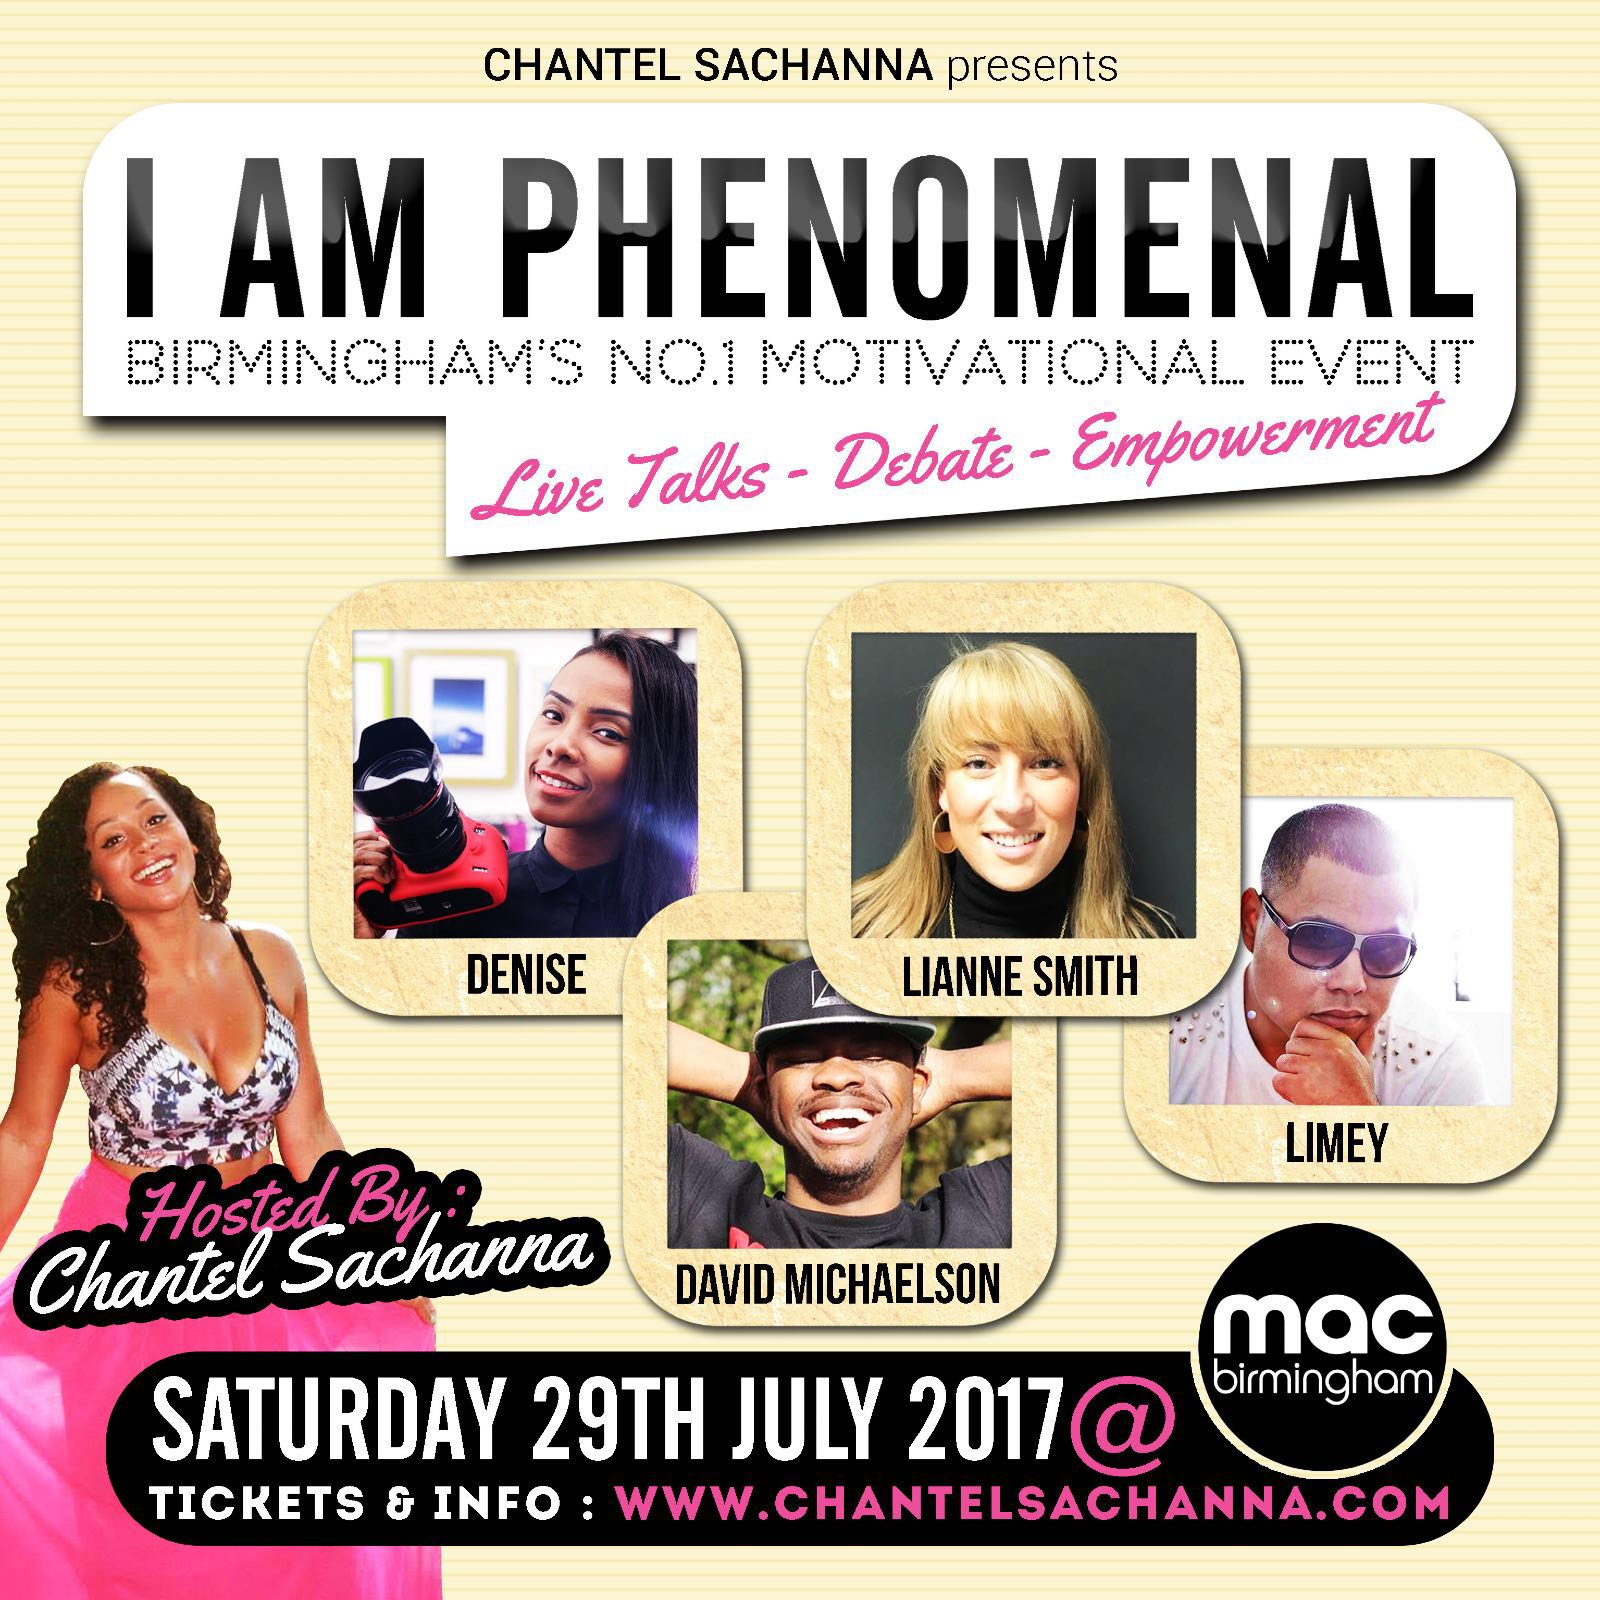 I Am Phenomenal is a motivational event with speakers discussing their careers and aspirations